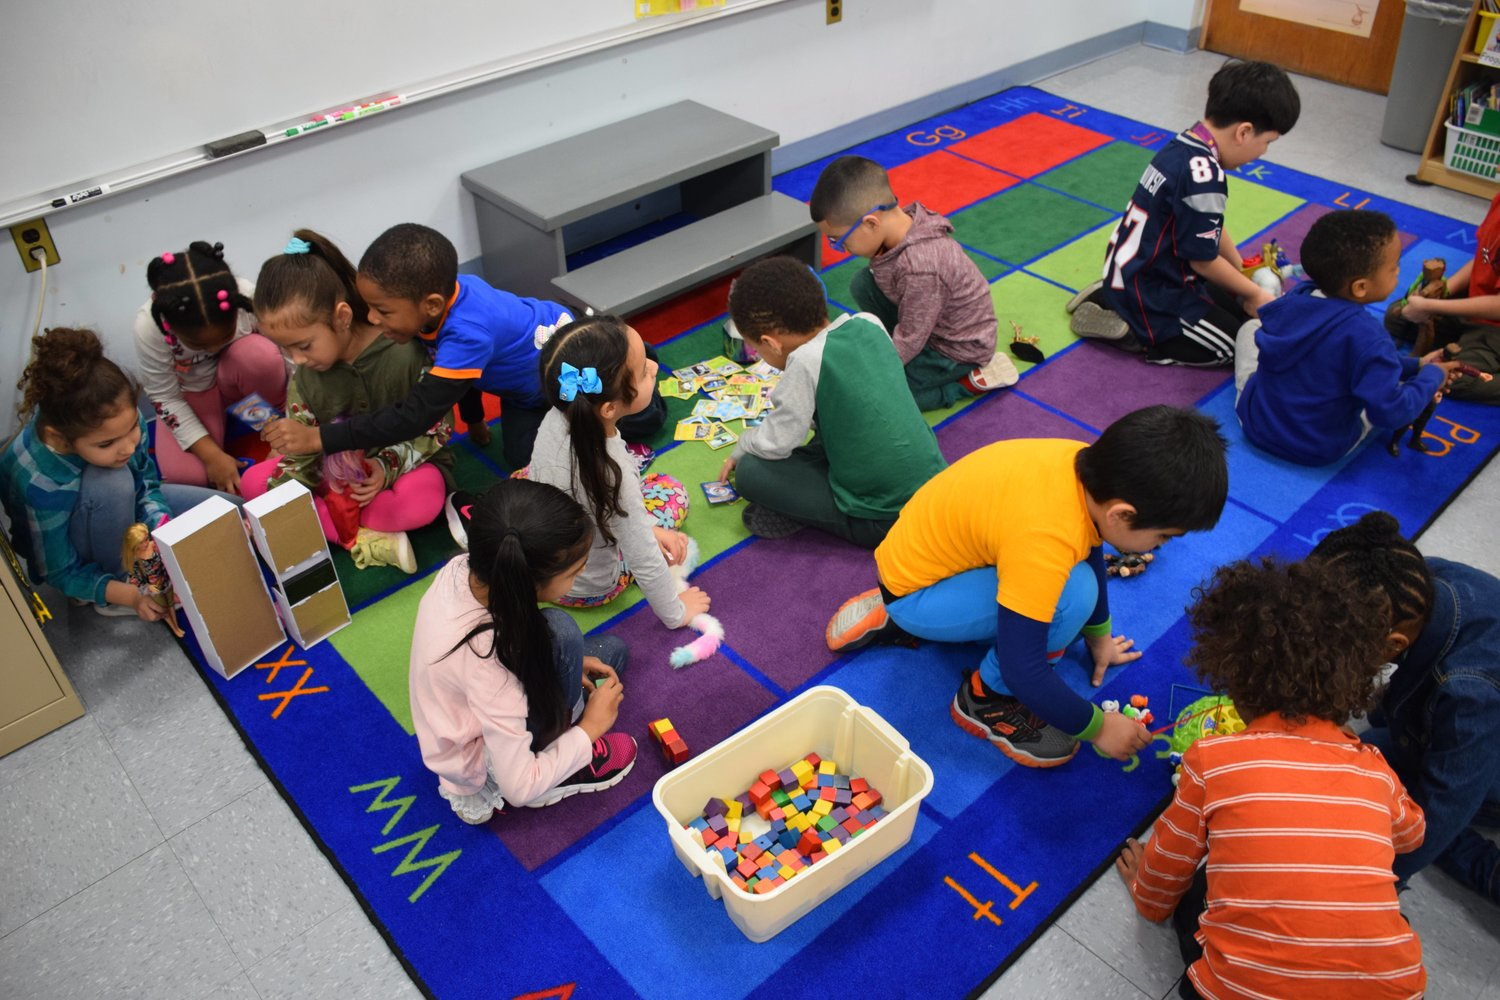 Students at Chestnut Street School took part in Global School Play Day on Feb. 6.